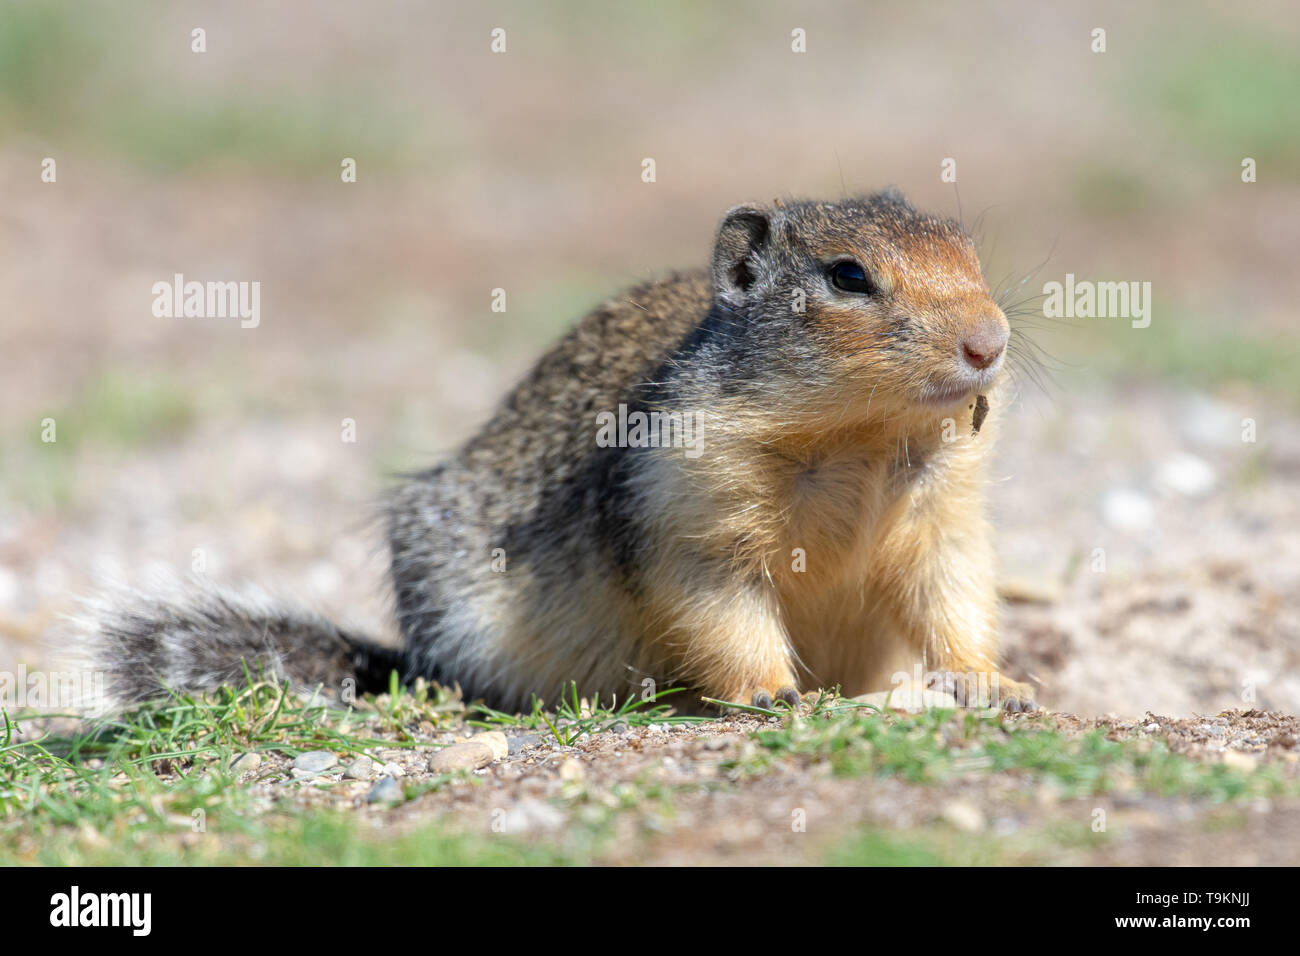 A Columbian Ground Squirrel (Urocitellus columbianus) looks for food near his home in the grass. - Stock Image